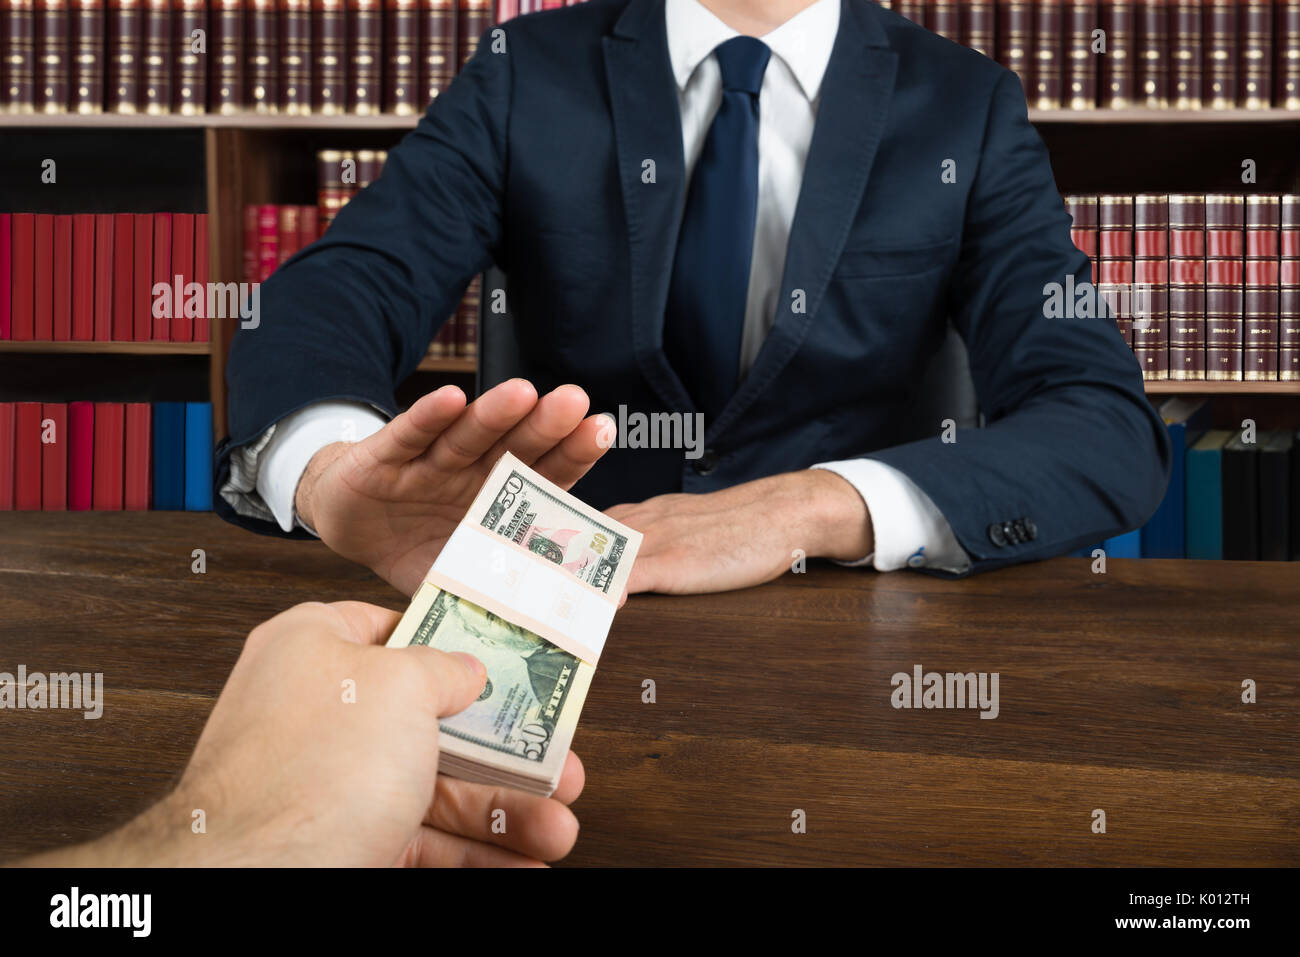 Midsection of lawyer refusing bribe to take from client at desk in courtroom Stock Photo